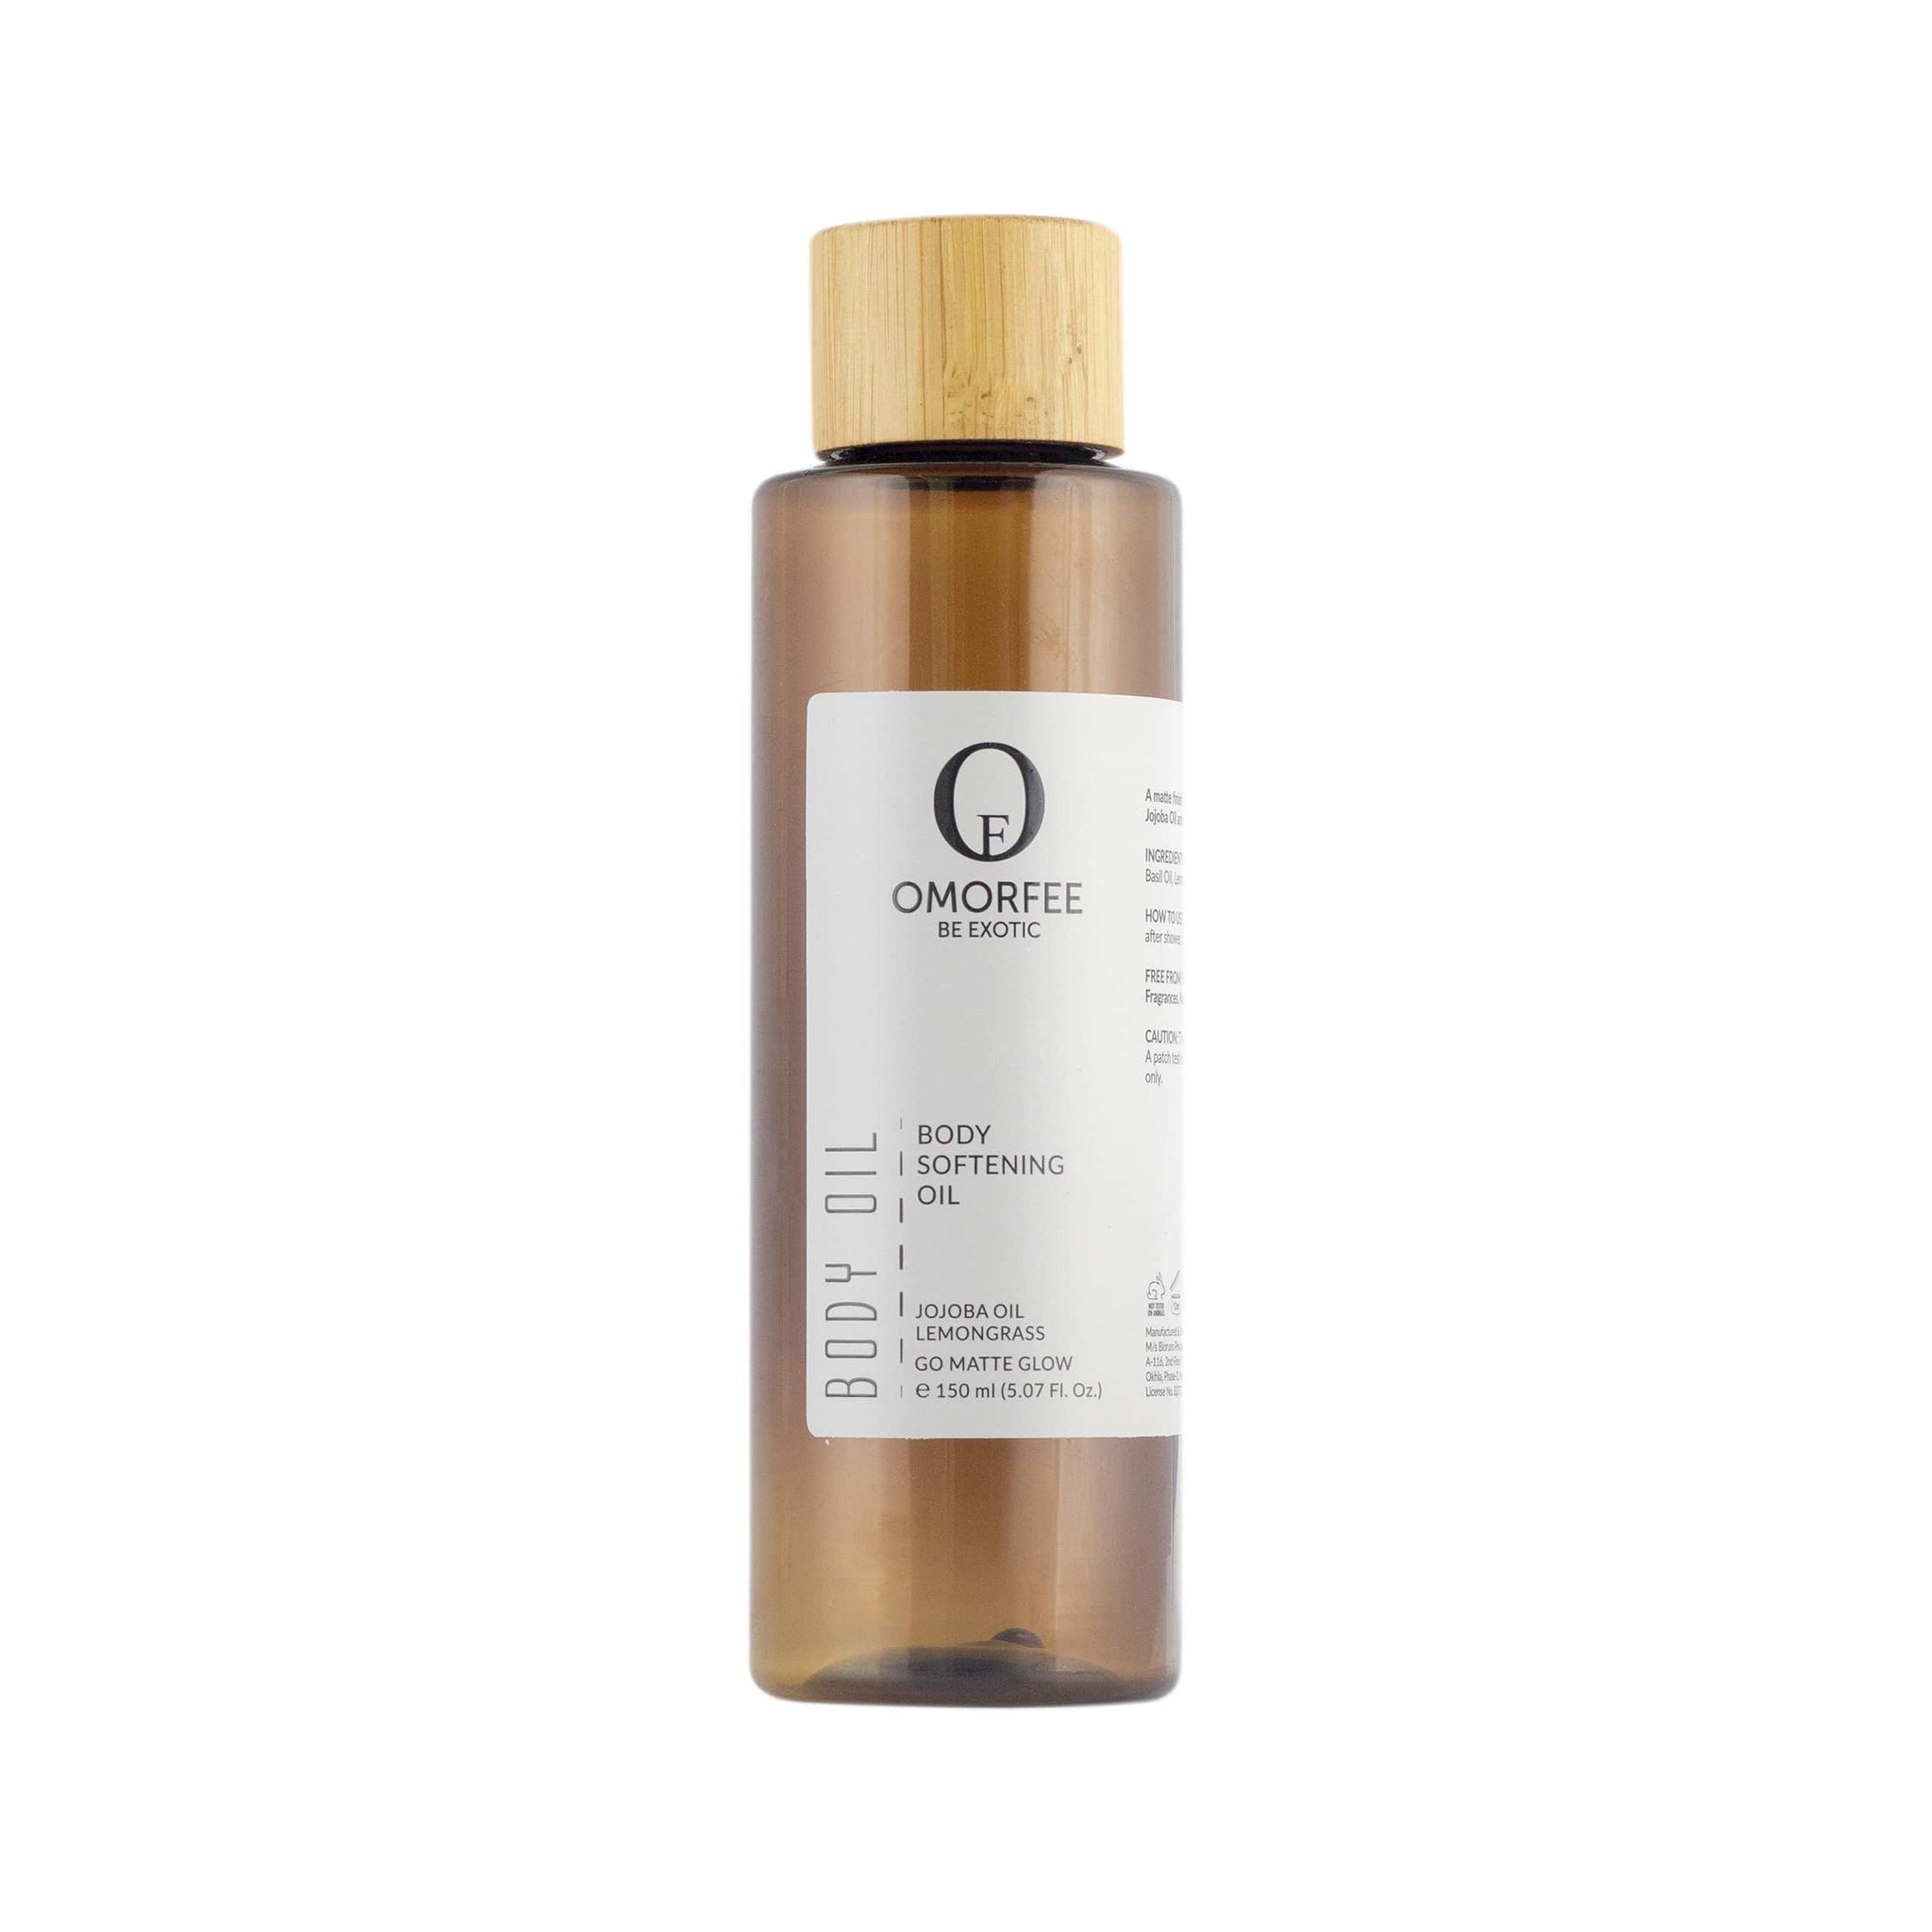 Omorfee Organic and all natural Body oil. omorfee-body-softening-oil-front-organic-skincare-products-organic-beauty-products-after-bath-body-oil-for-dry-skin